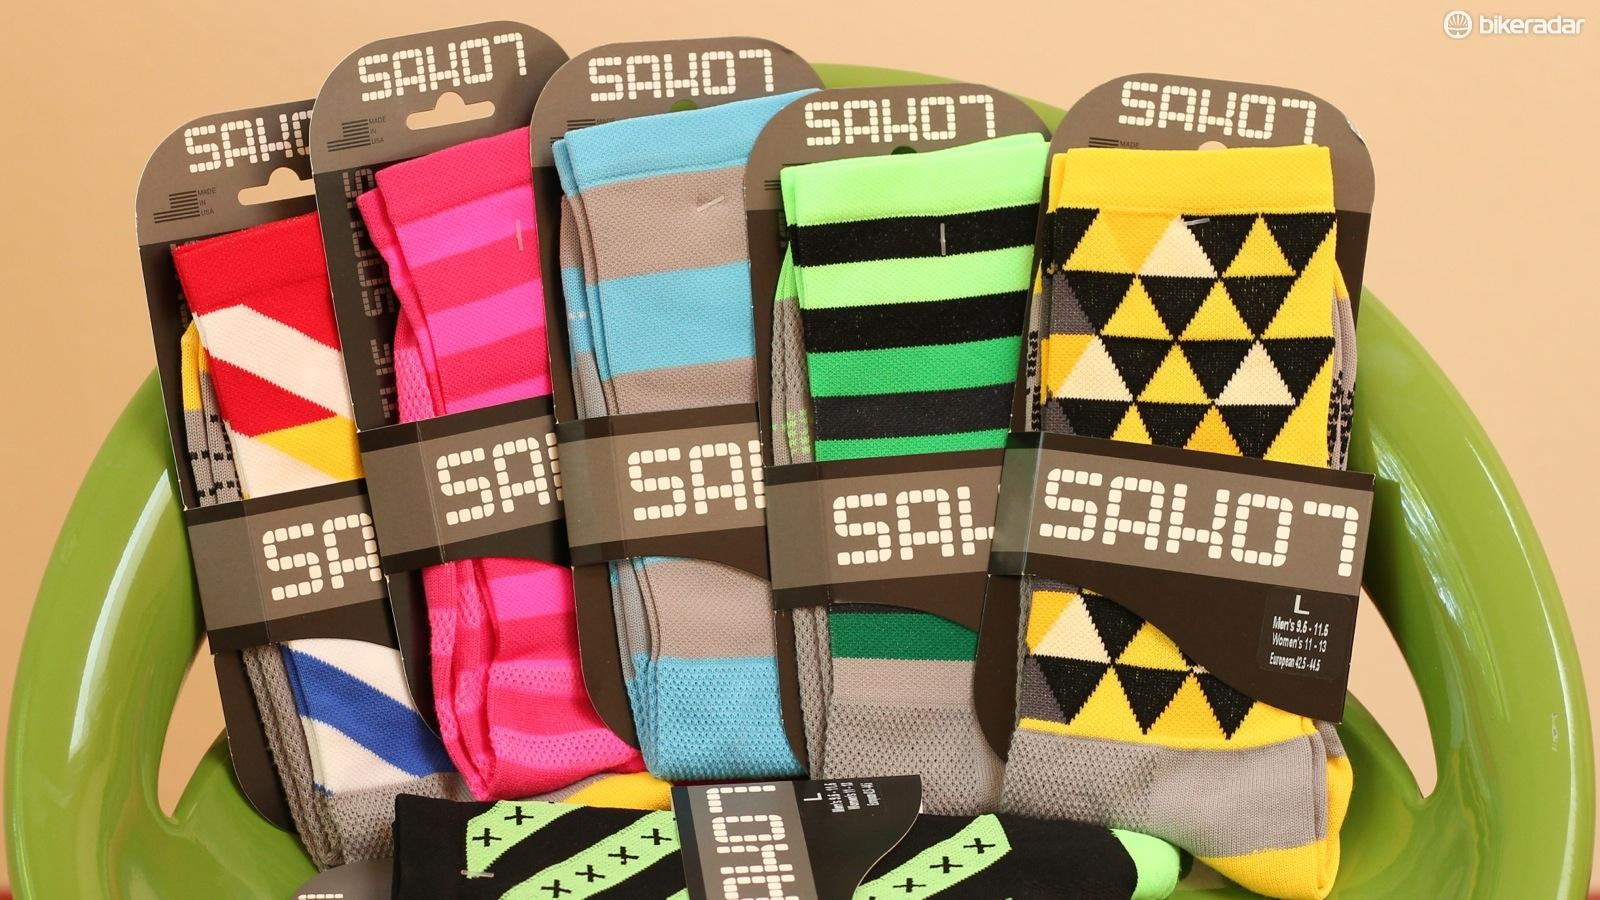 Sako7 socks are not cheap, but that is not the point, the company says, referencing its use of high-quality yarns